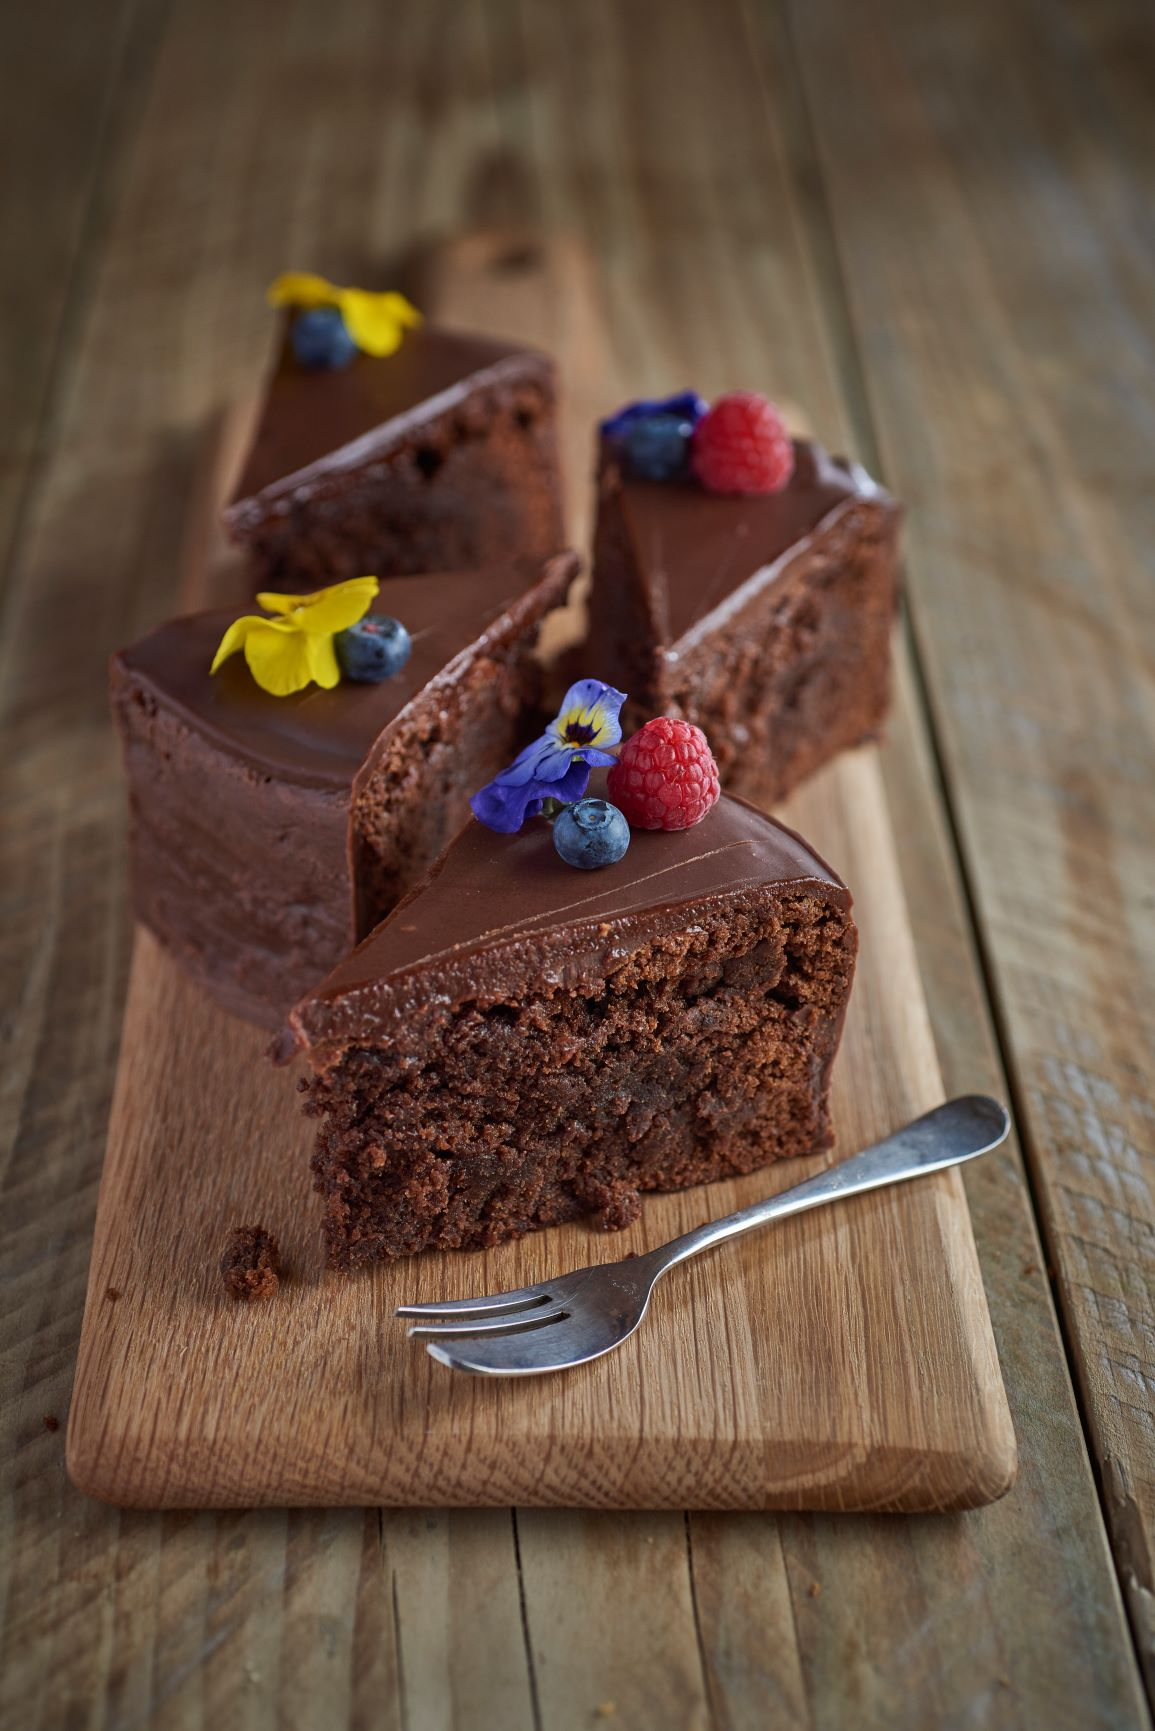 Gluten and dairy free chocolate cake